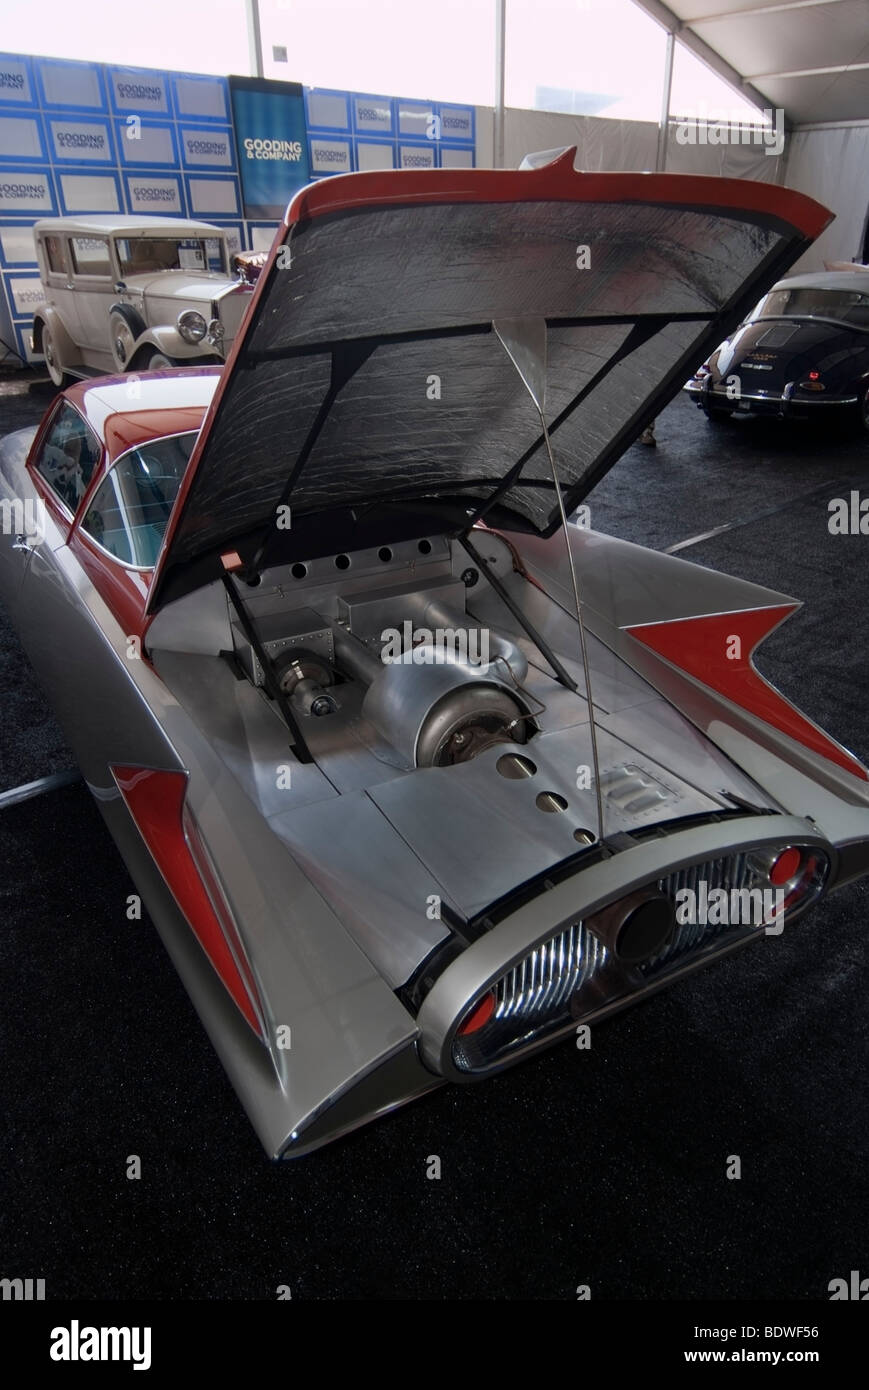 1955 Ghia Streamline X 'Gilda' Jet Powered car before the Gooding & Company auction at the Pebble Beach - Stock Image